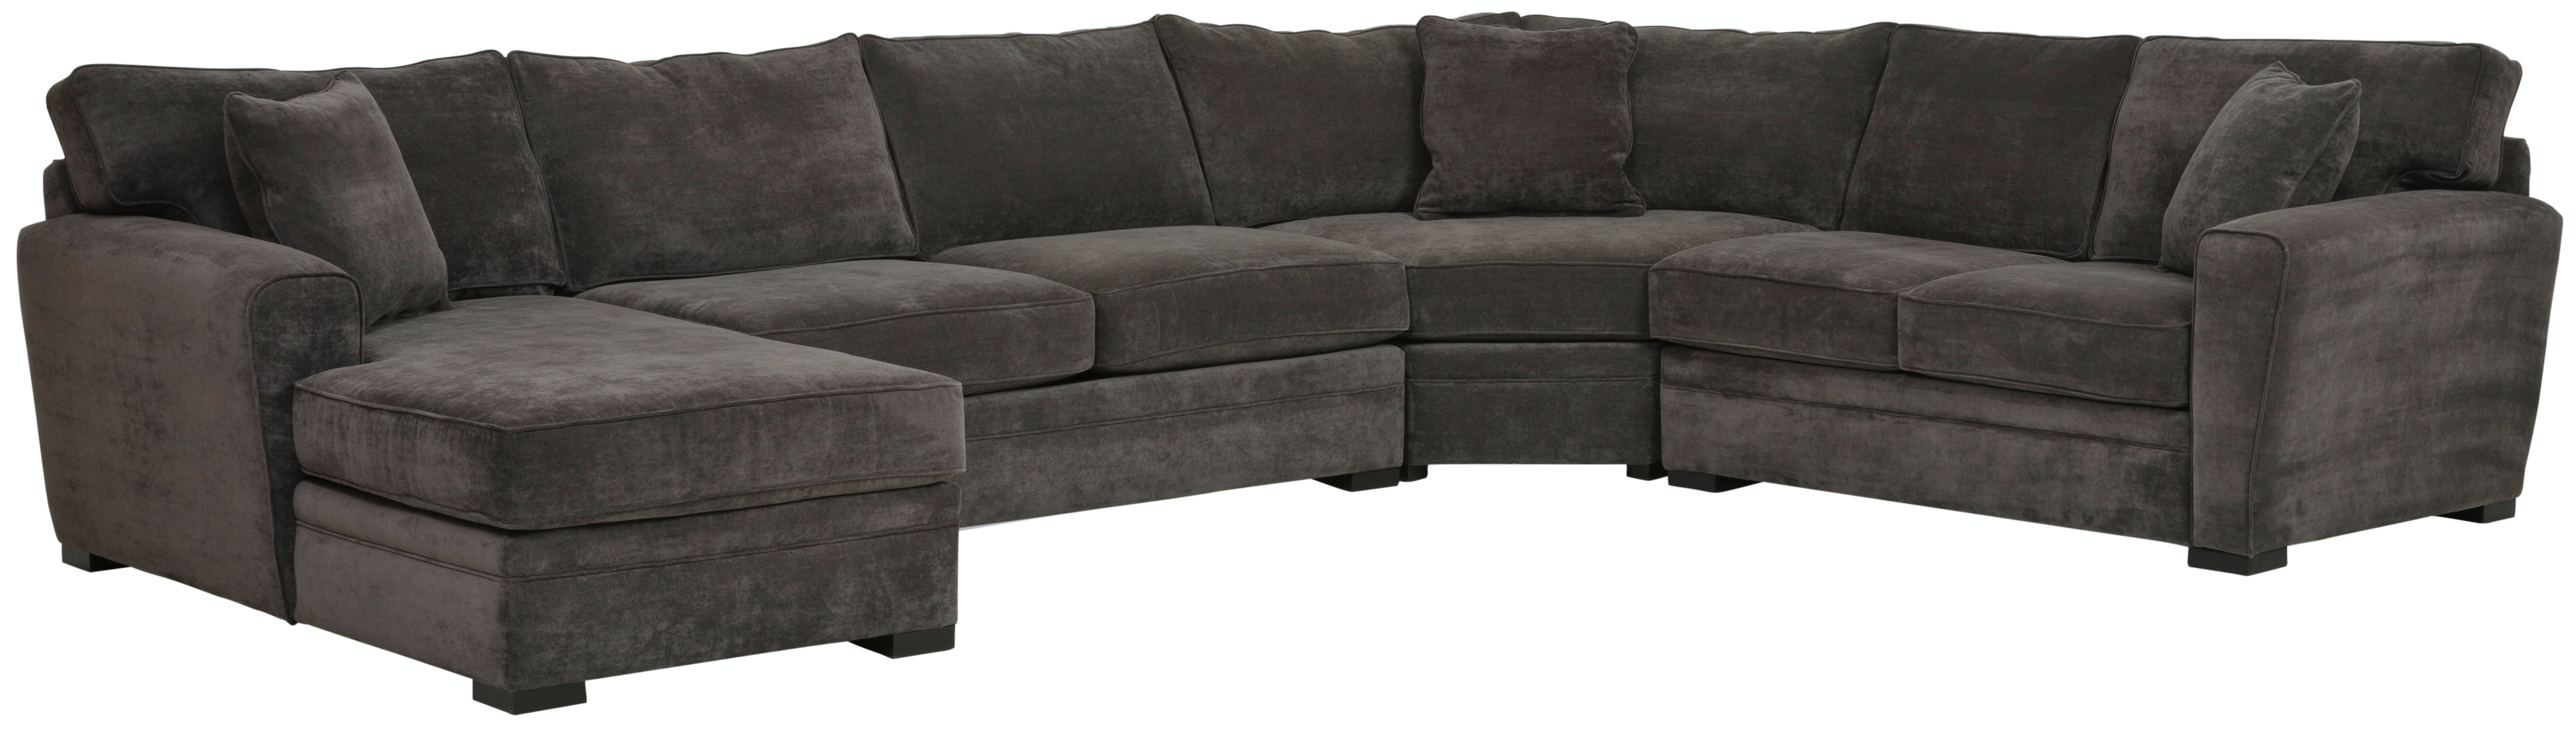 Artemis 4-Piece Sectional GPU086  sc 1 st  Star Furniture : 4 piece sectional with chaise - Sectionals, Sofas & Couches